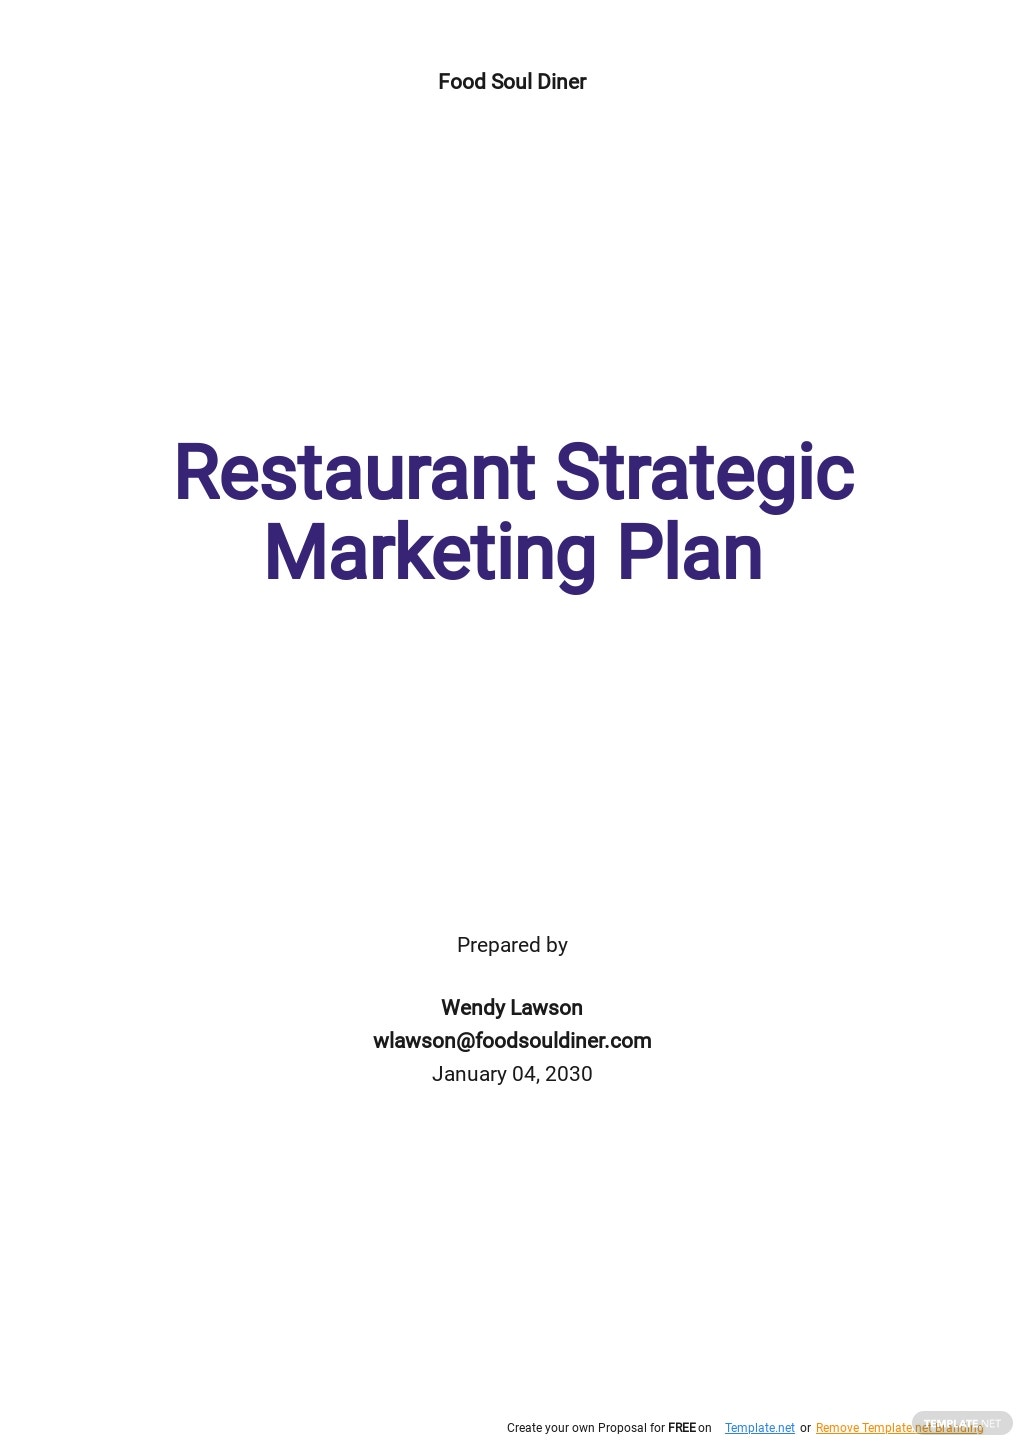 Restaurant Strategic Marketing Plan Template